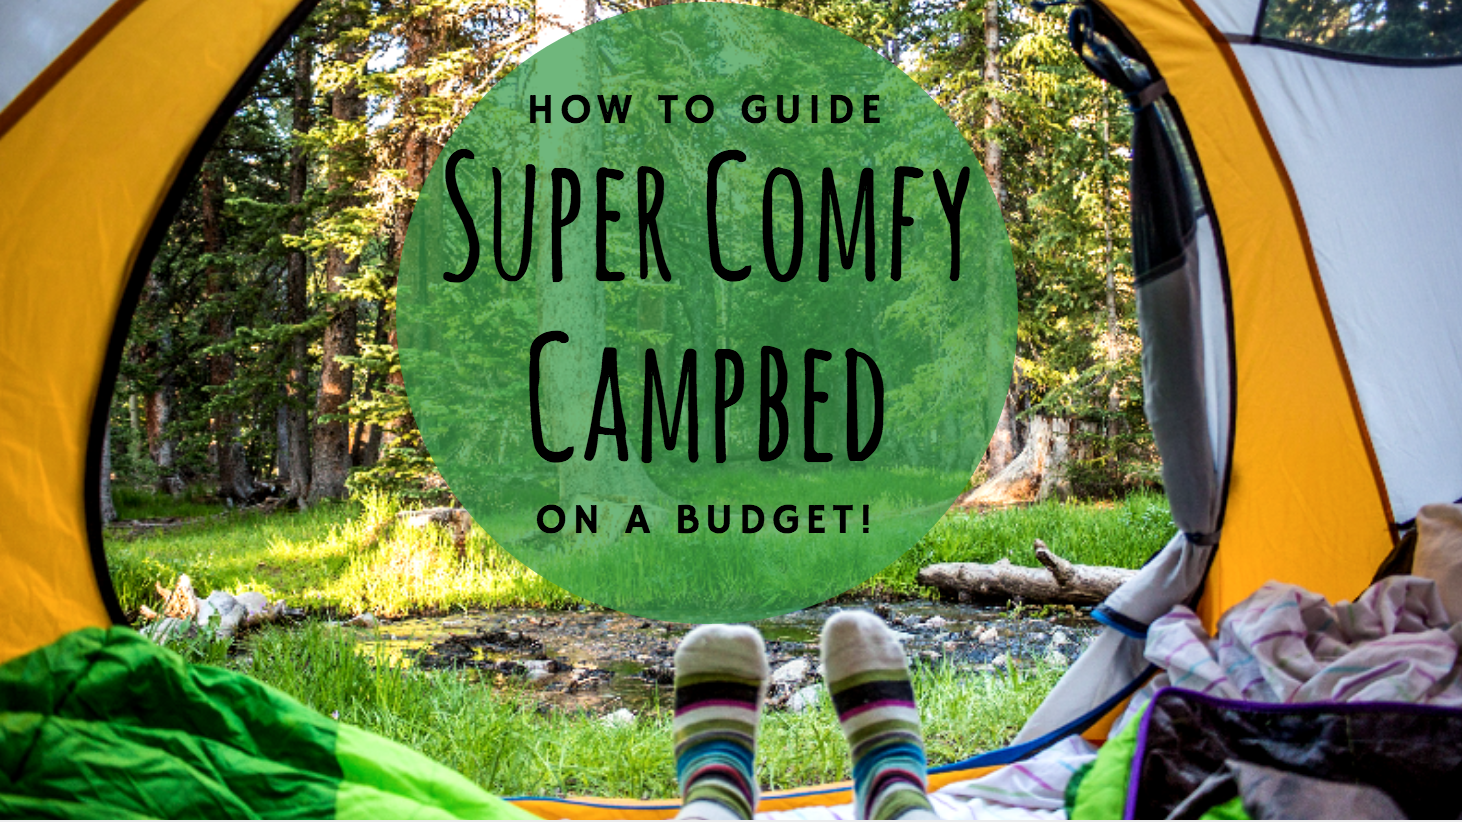 How To Make A Super Comfy Camp Bed On A Budget Diy Guide